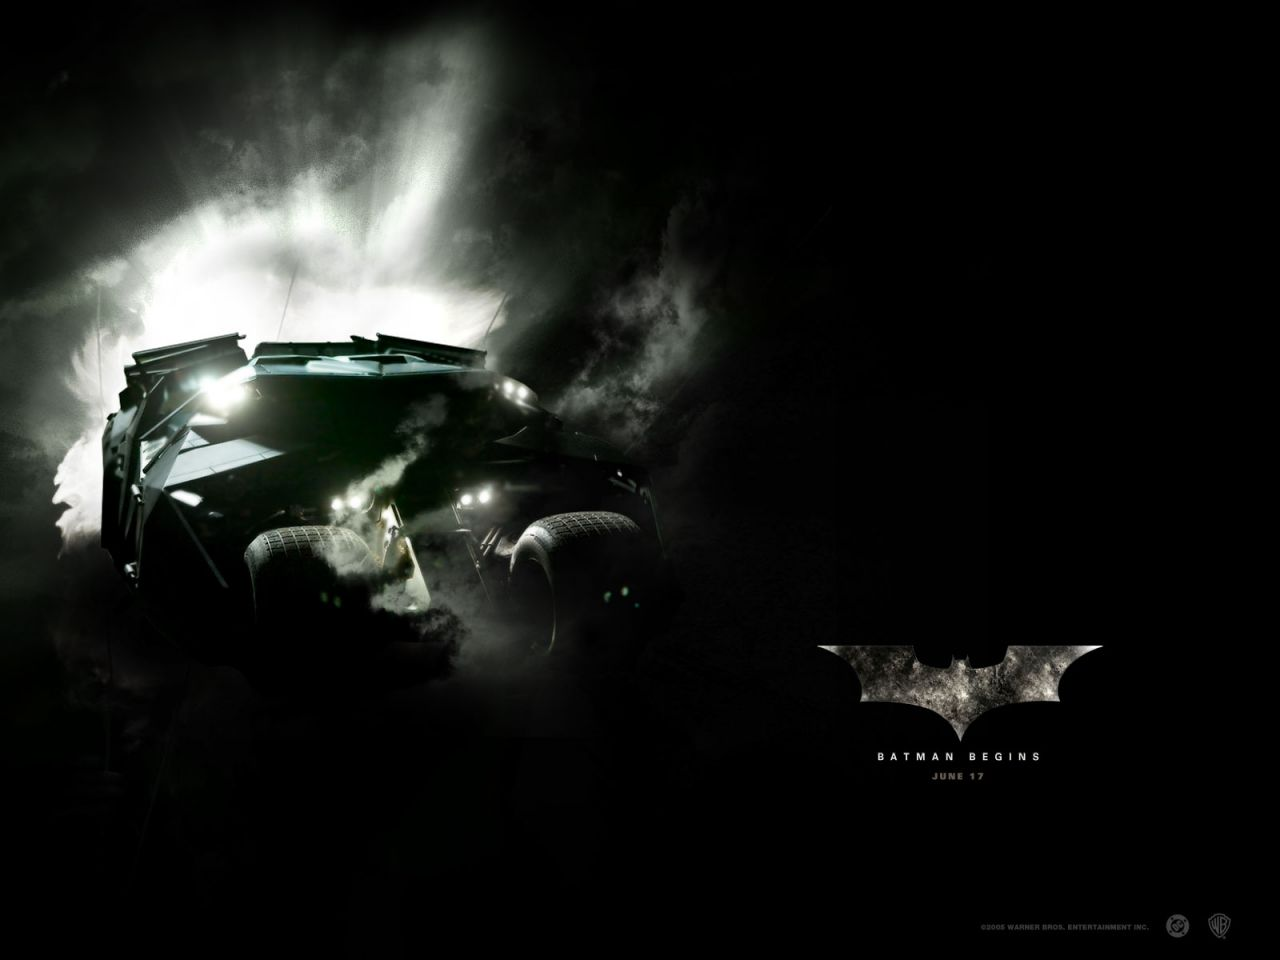 Batmobile Batman Begins Poster Wallpaper 1280x960